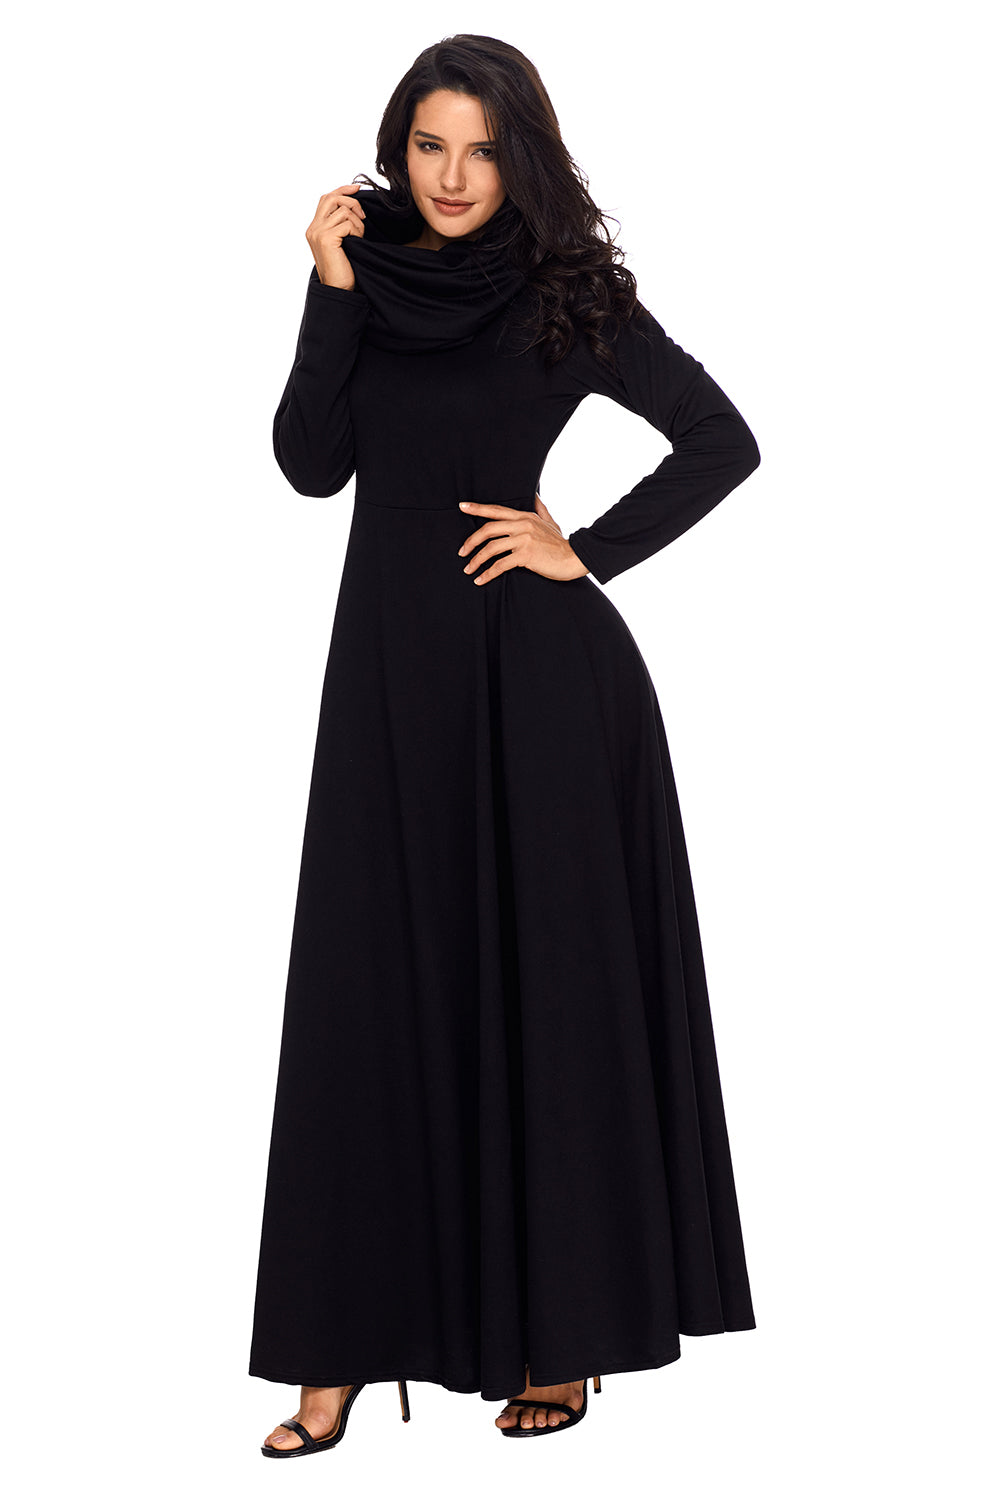 Her Fashion Black Turtleneck Neck Long Sleeve Trendy Maxi Dress